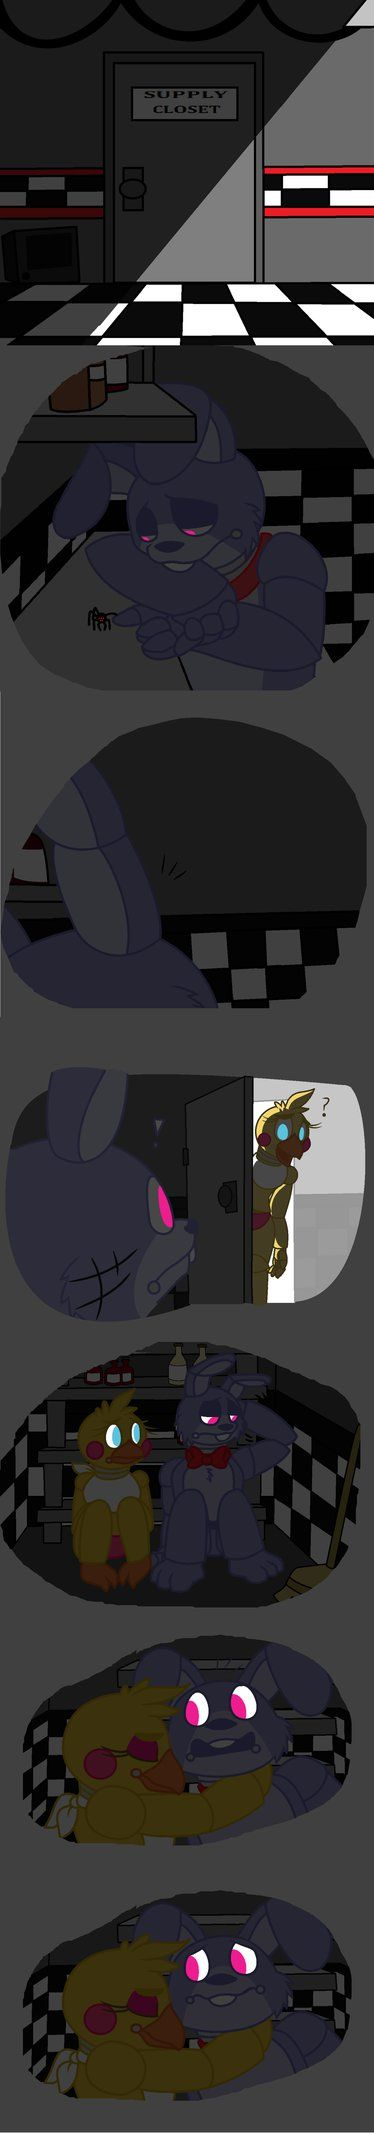 Ship Comic: Seven minutes in Heaven page 1 by HTF-ADTI-MLP100606